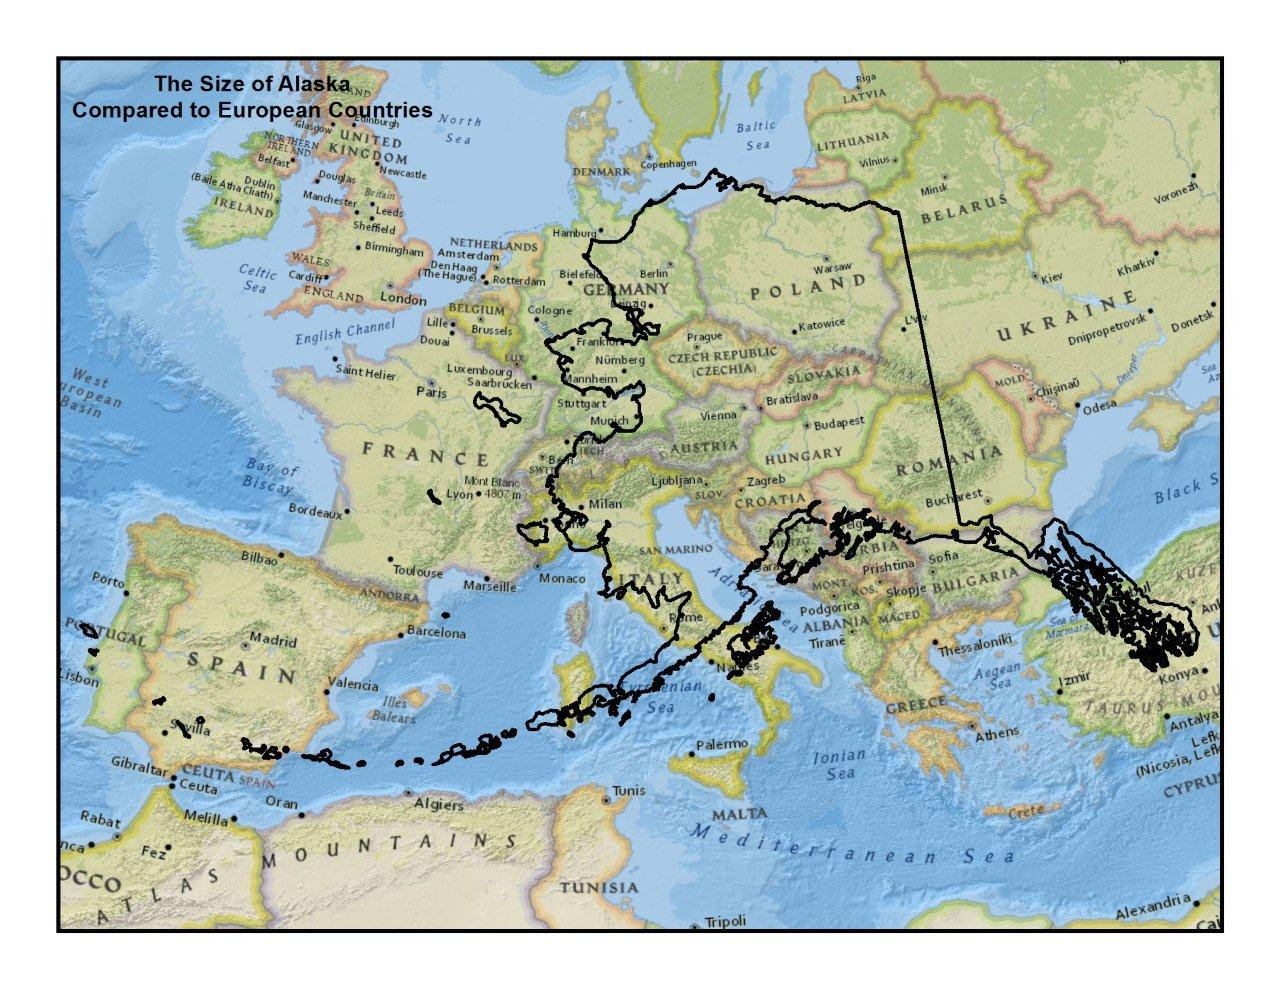 alaska-size-compared-to-europe